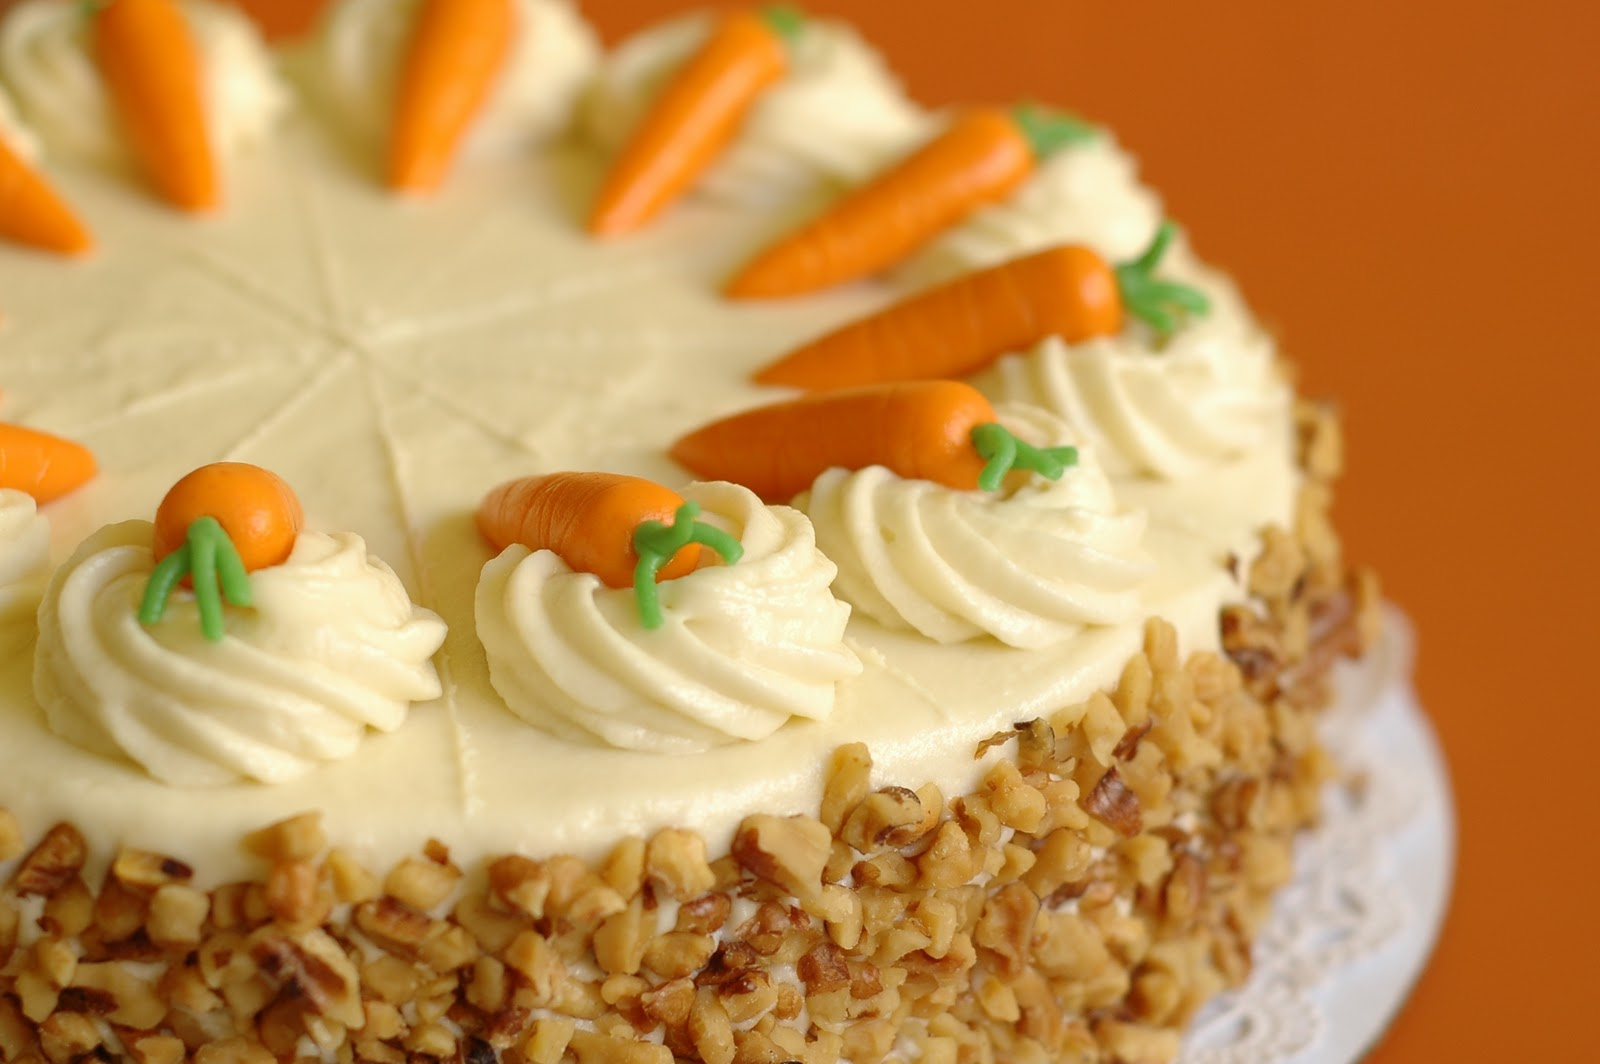 The Unexpected Culinarian Best Carrot Cake Ever